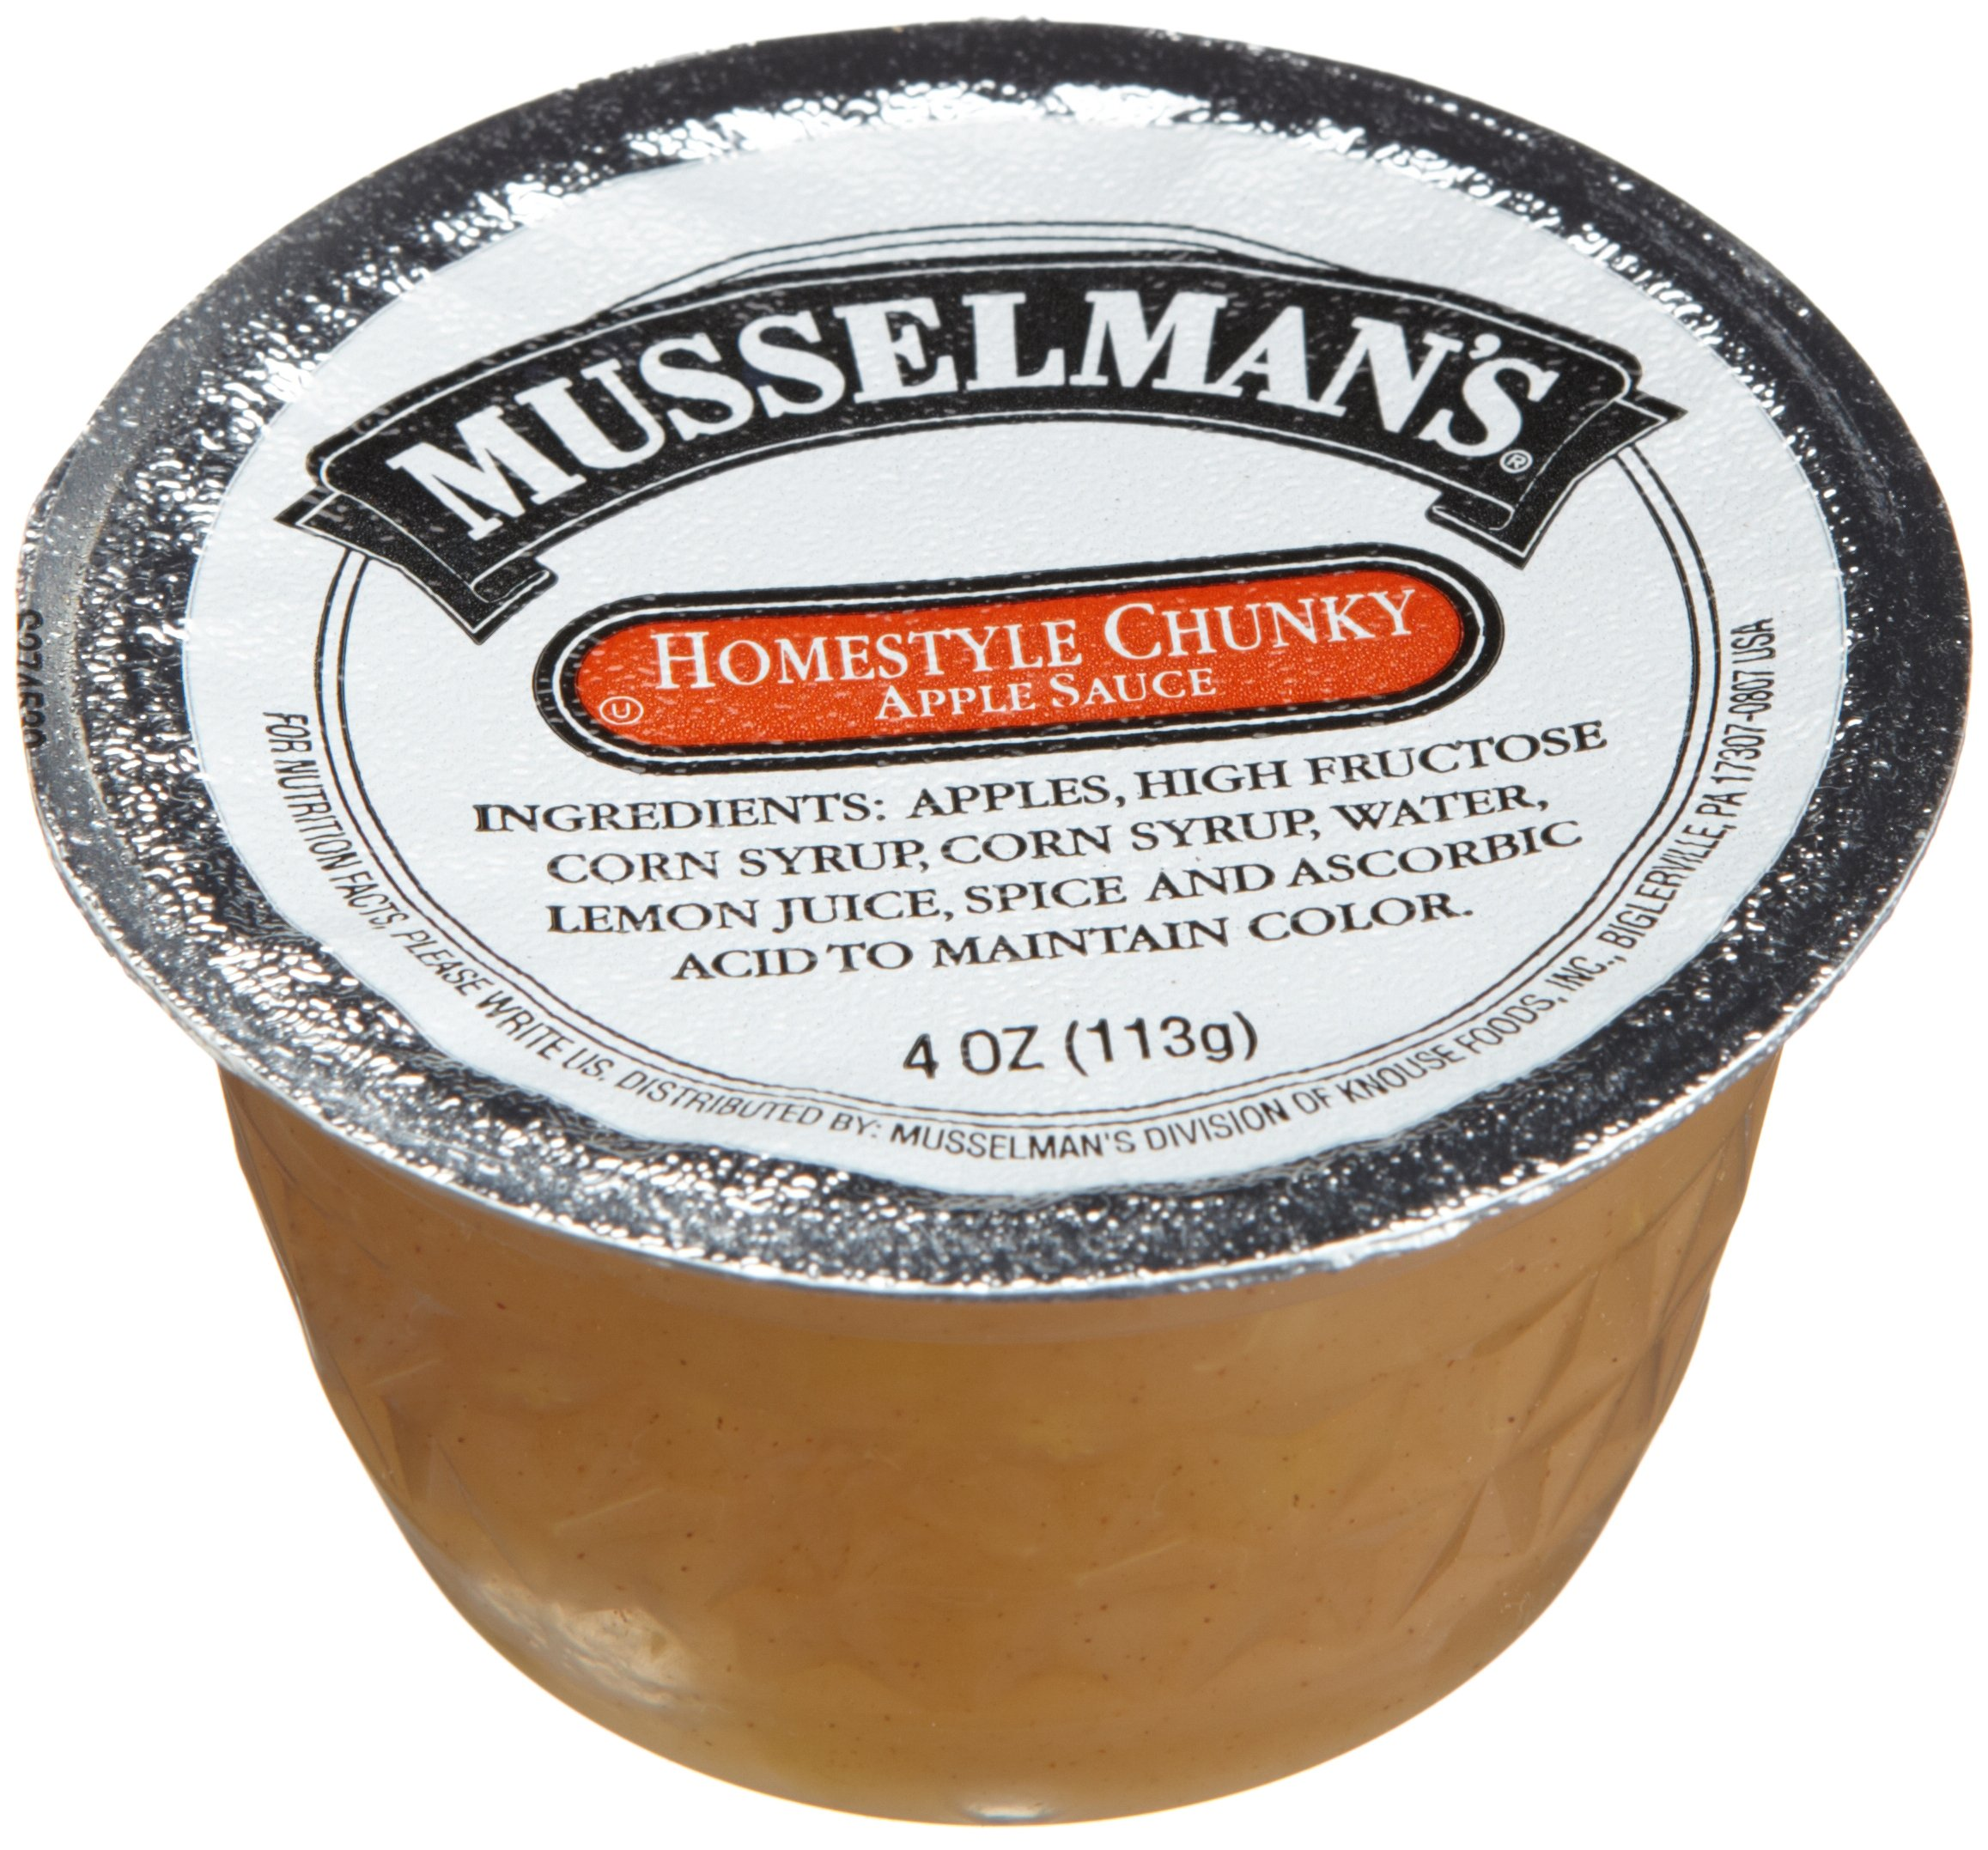 Musselman's Homestyle Chunky Applesauce, 4-Ounce Cups (Pack of 72) by Musselmans (Image #1)